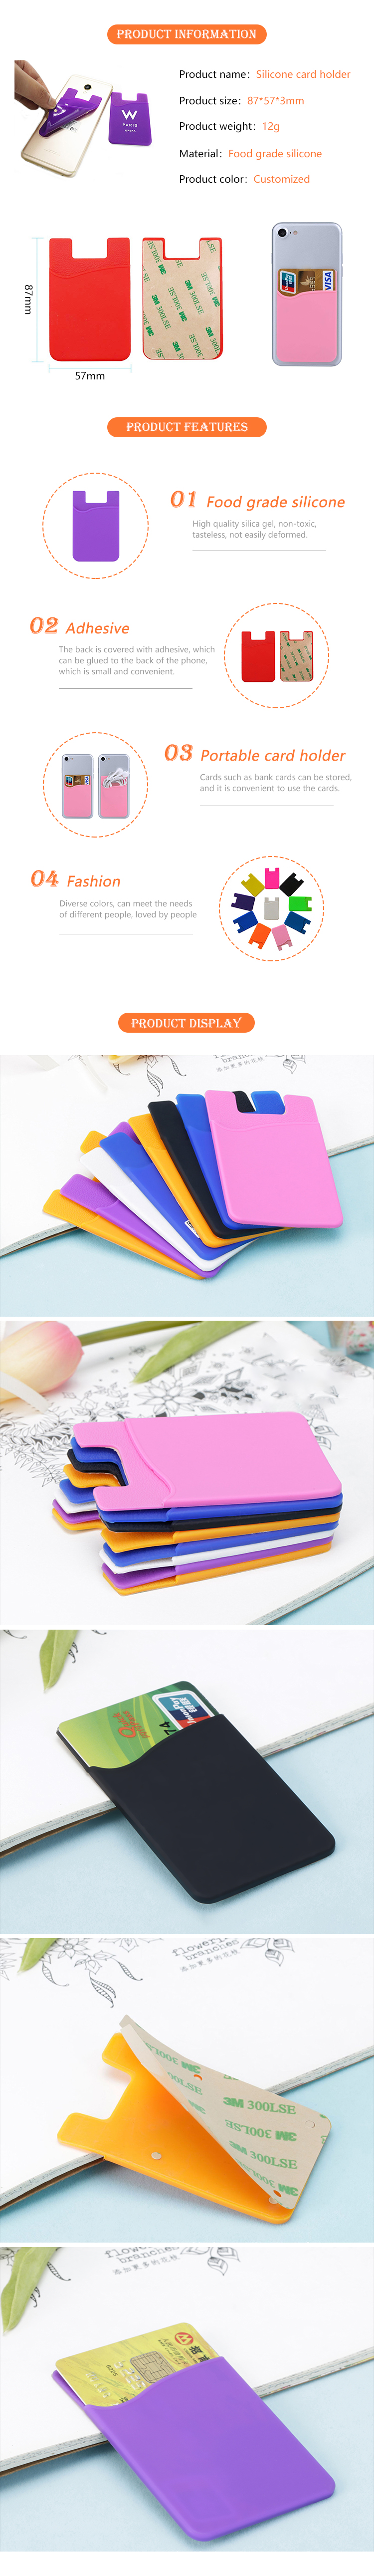 Hot Sale Adhesive Silicone Mobile Phone Gift Credit Card Holder